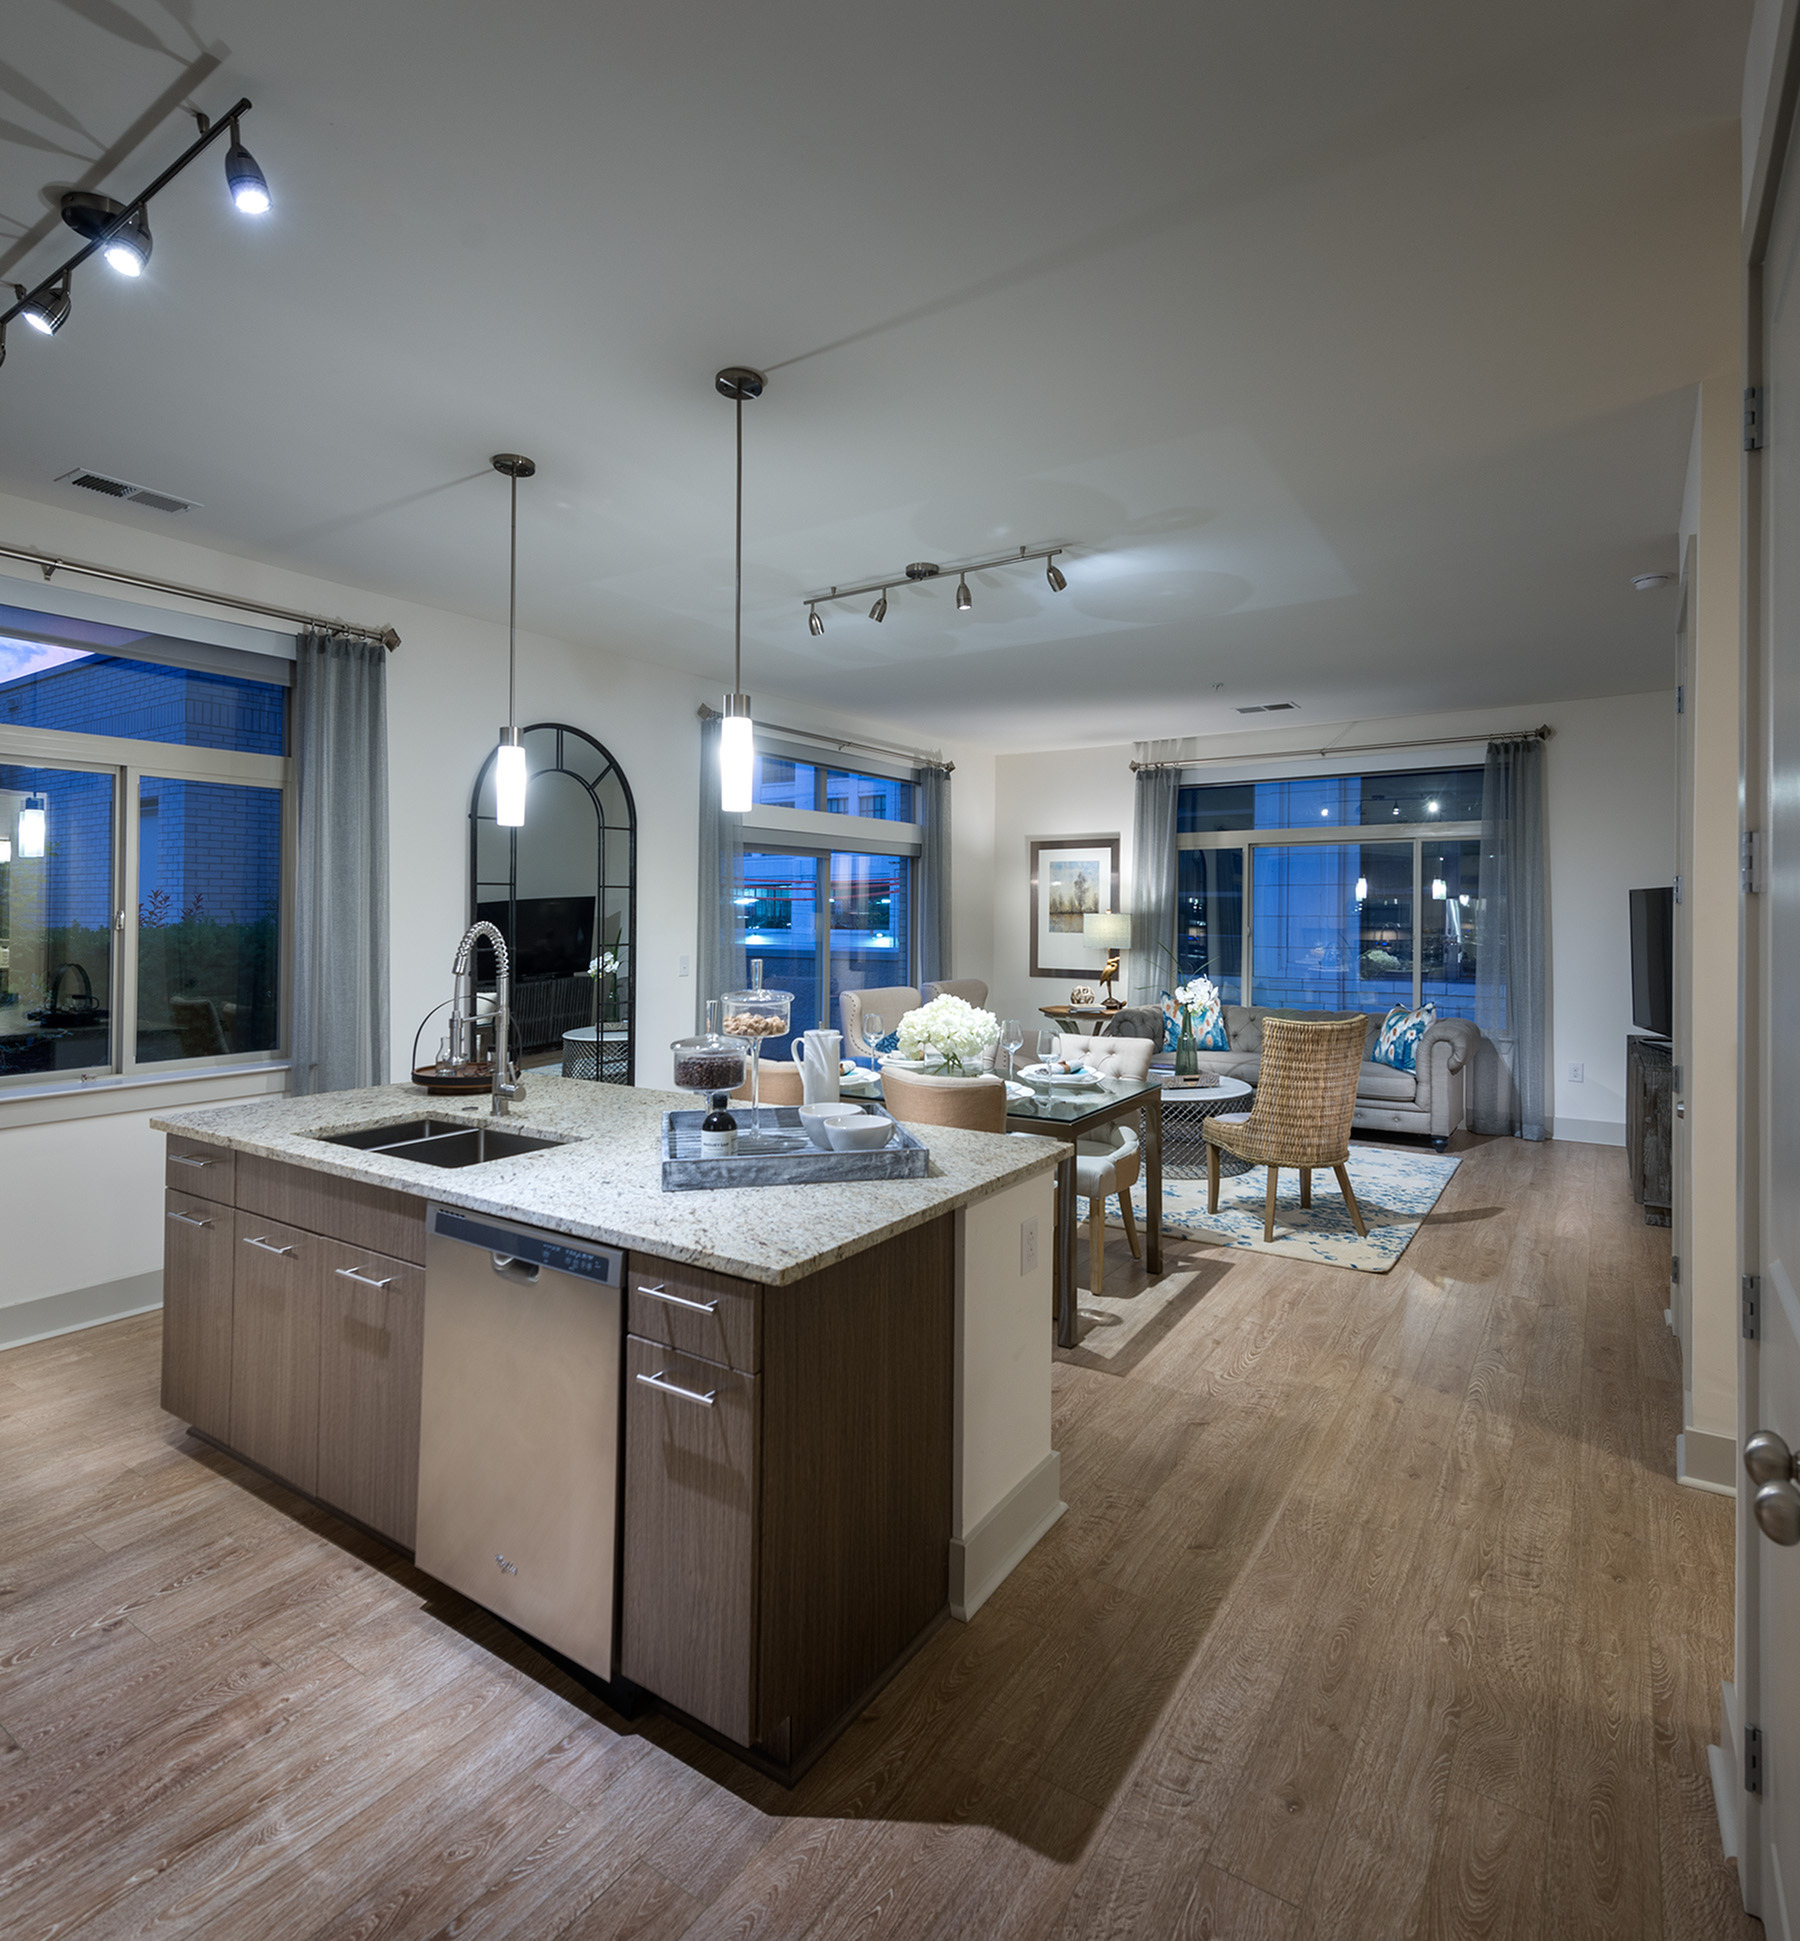 Image of Designer custom cabinetry and spacious kitchen islands for Hanover North Broad